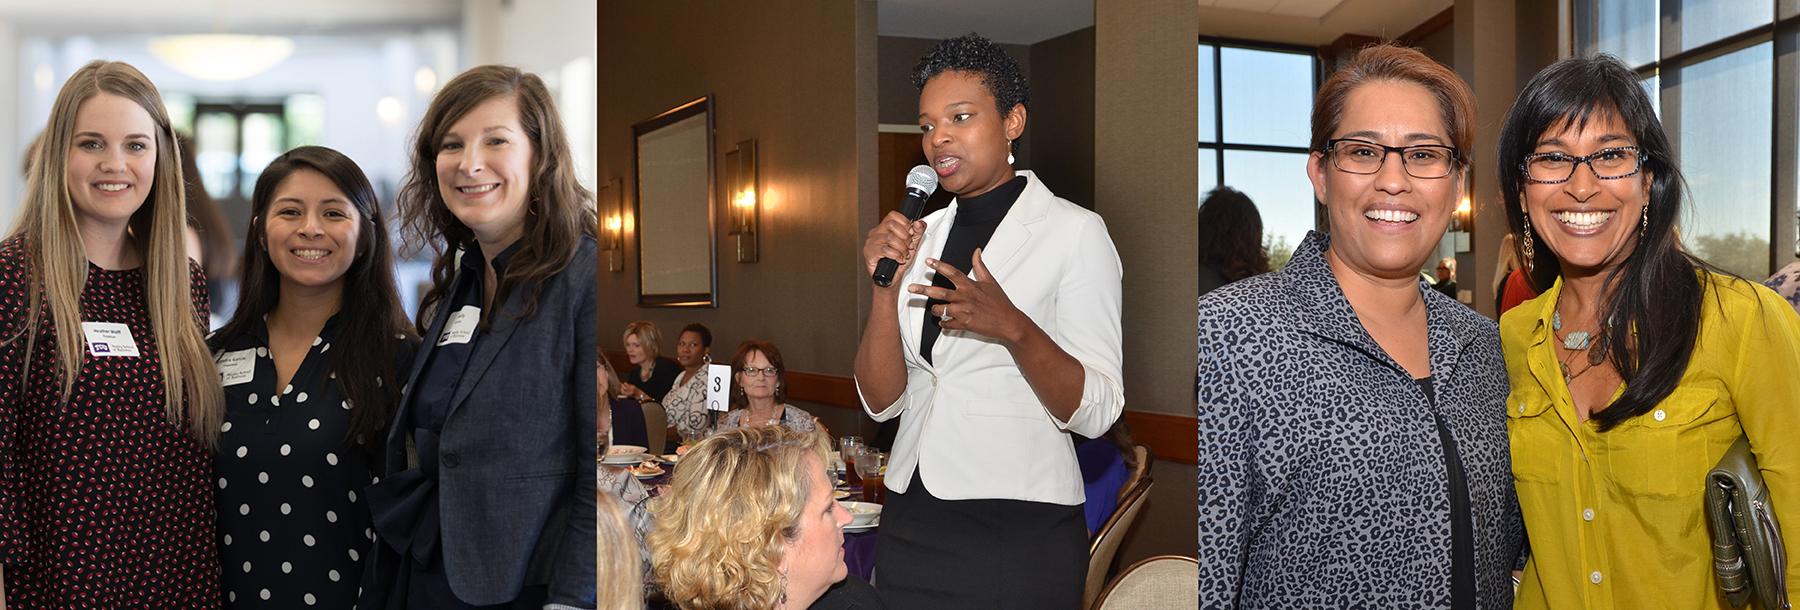 Section Image: Amplify Women in Sales